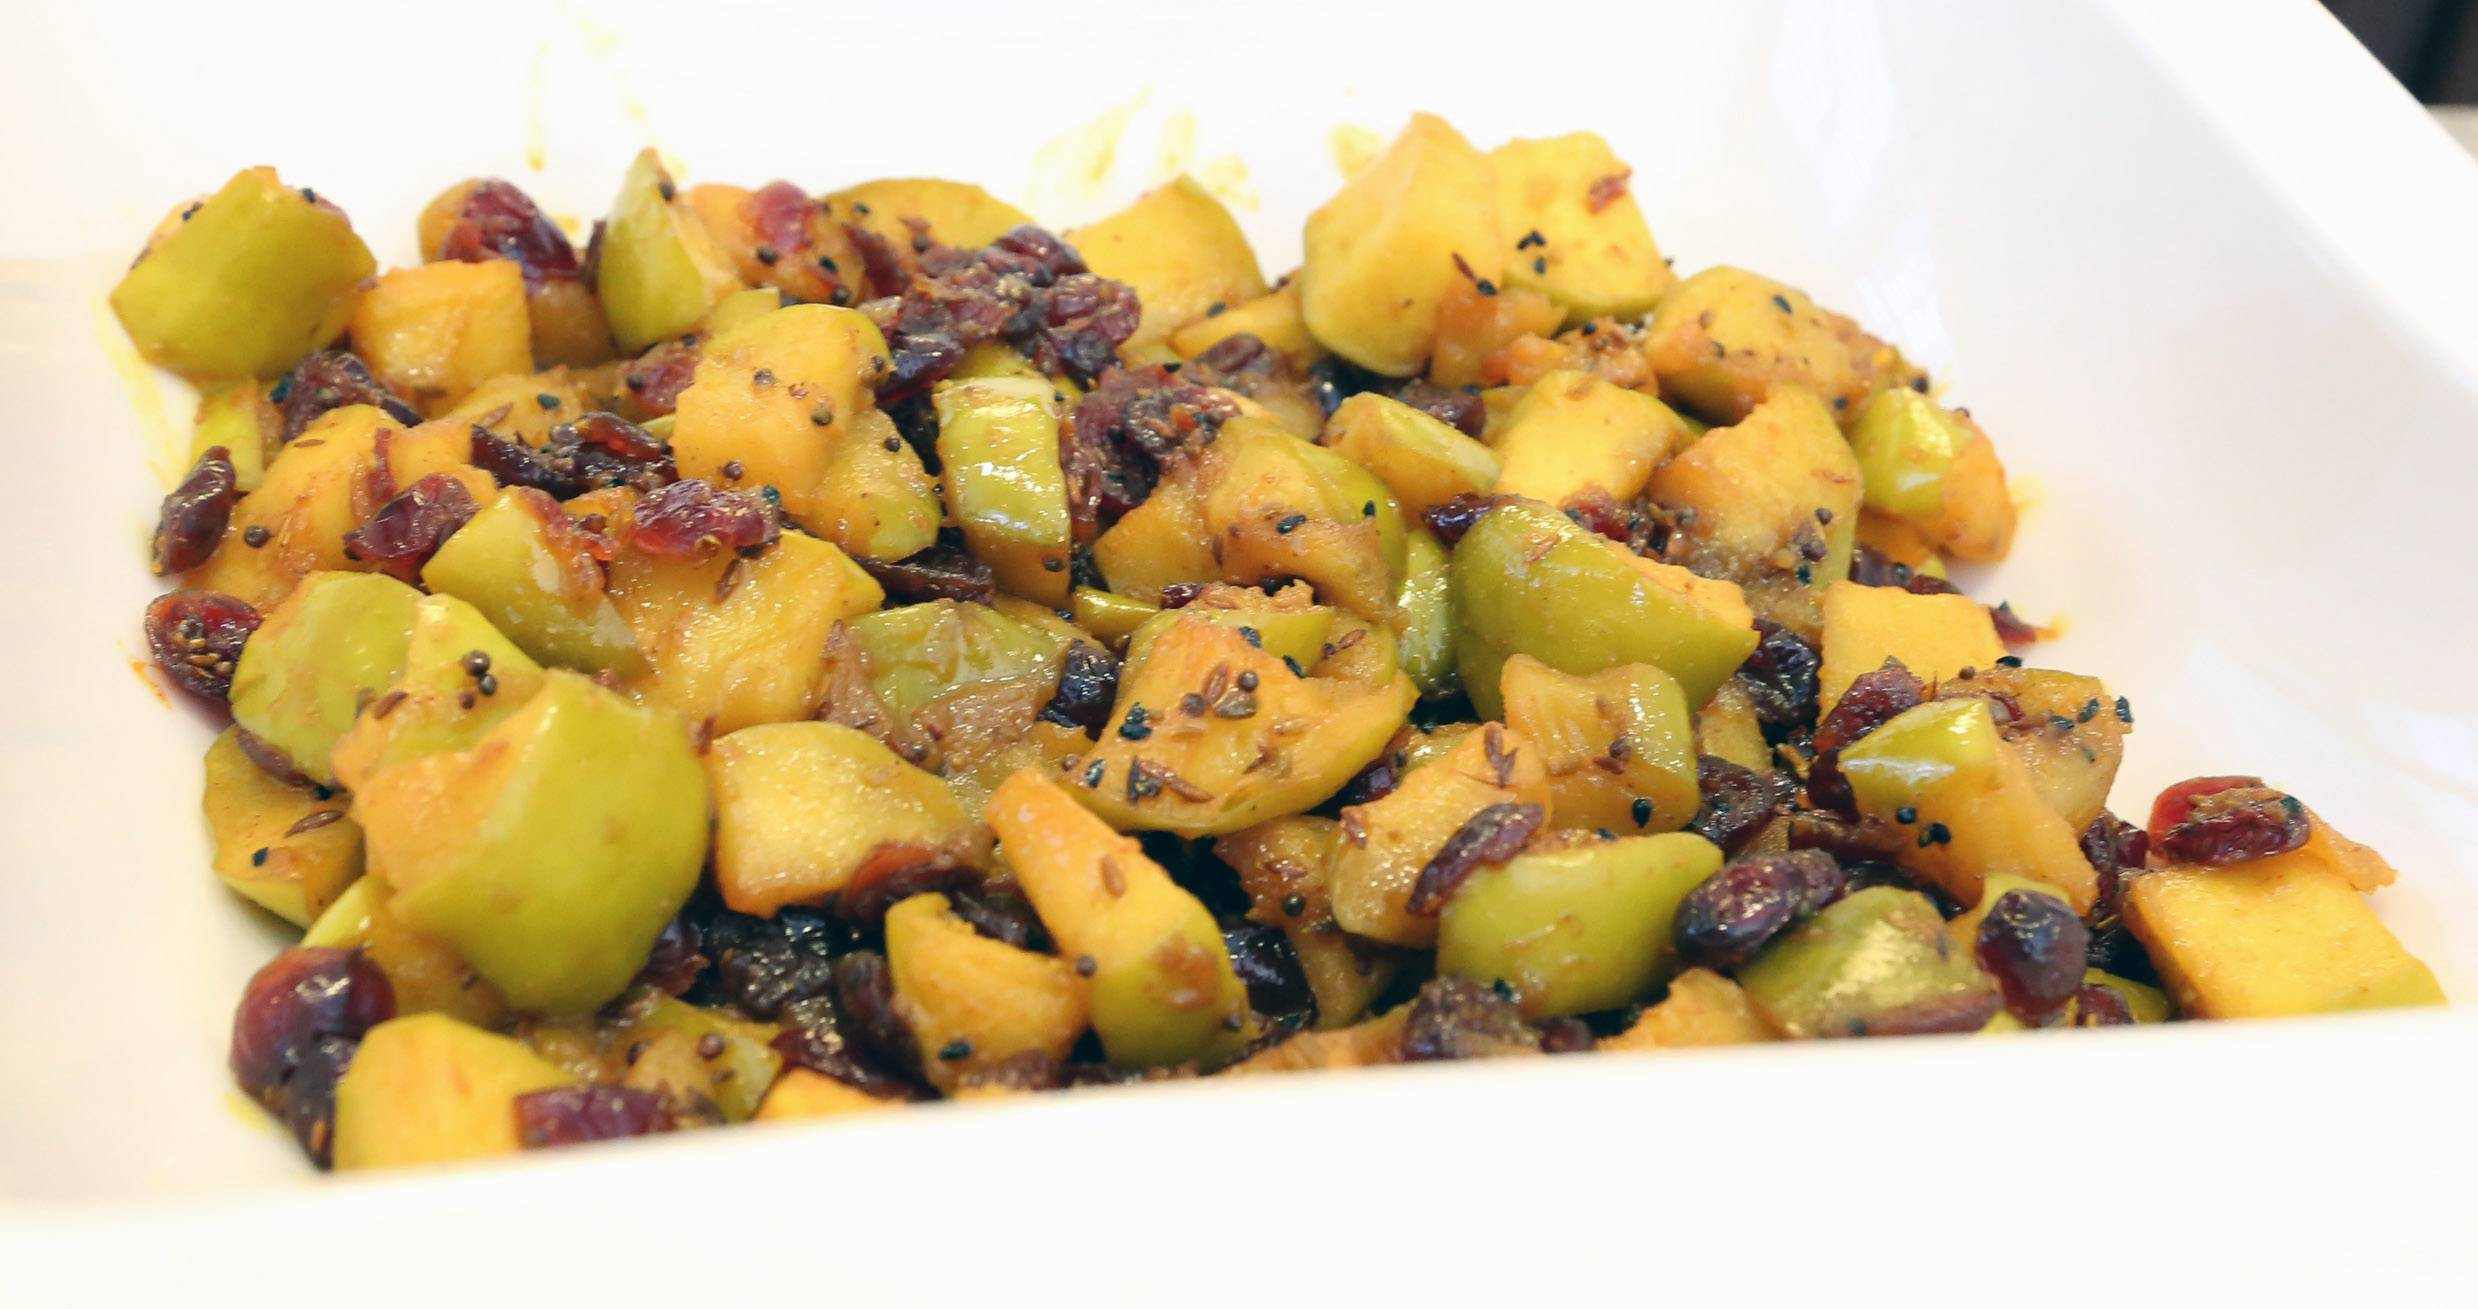 Apples and cranberries simmer with fennel, turmeric and other spices in Sushma Bhanot's sabzi.